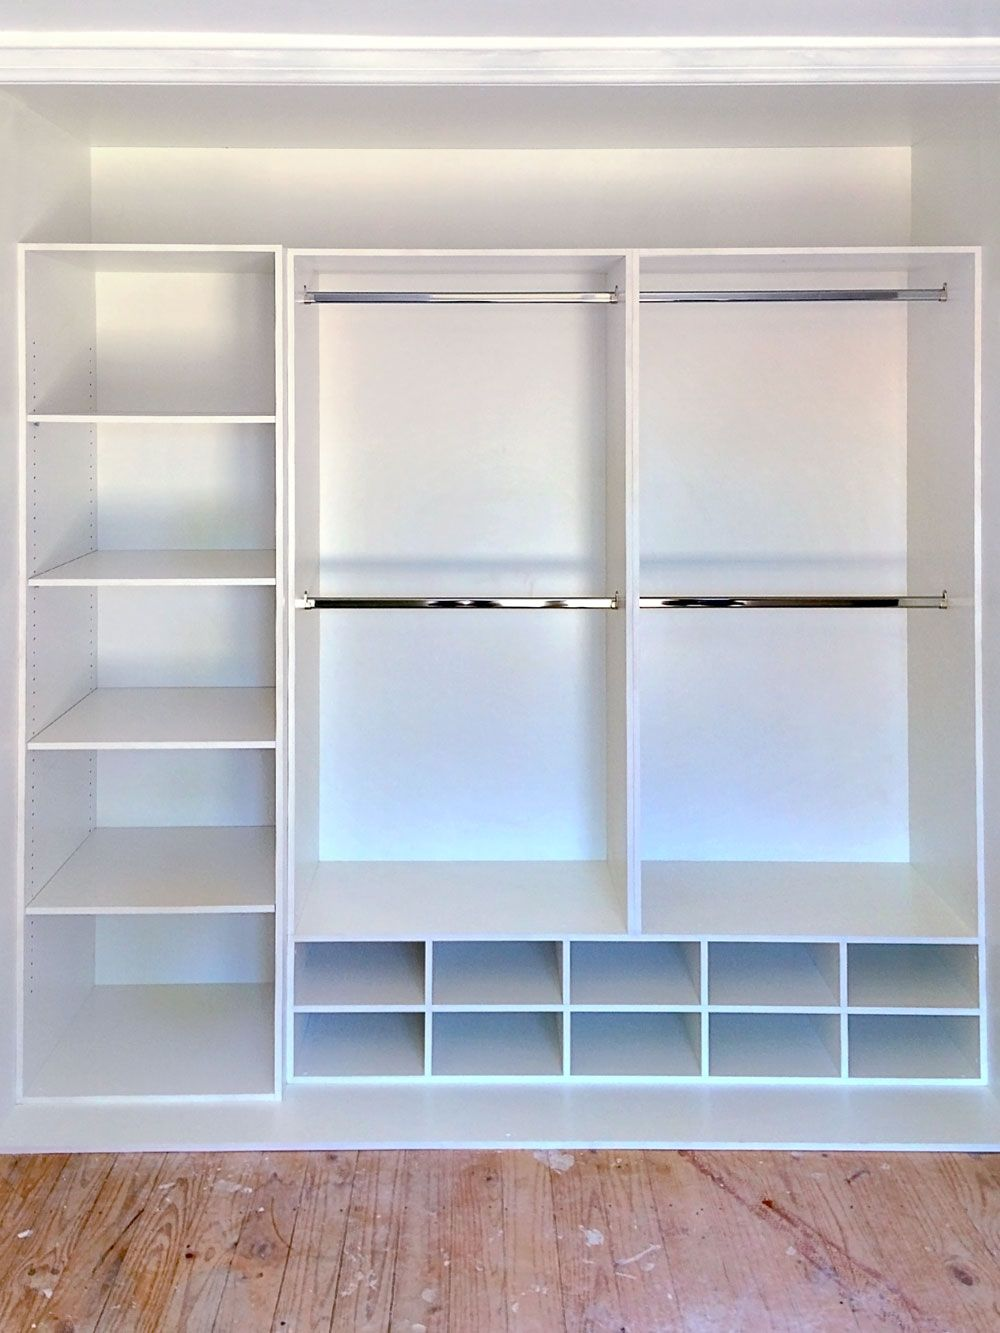 Idea de dise o de closet peque o terrazas pinterest for Roperos para habitaciones pequenas